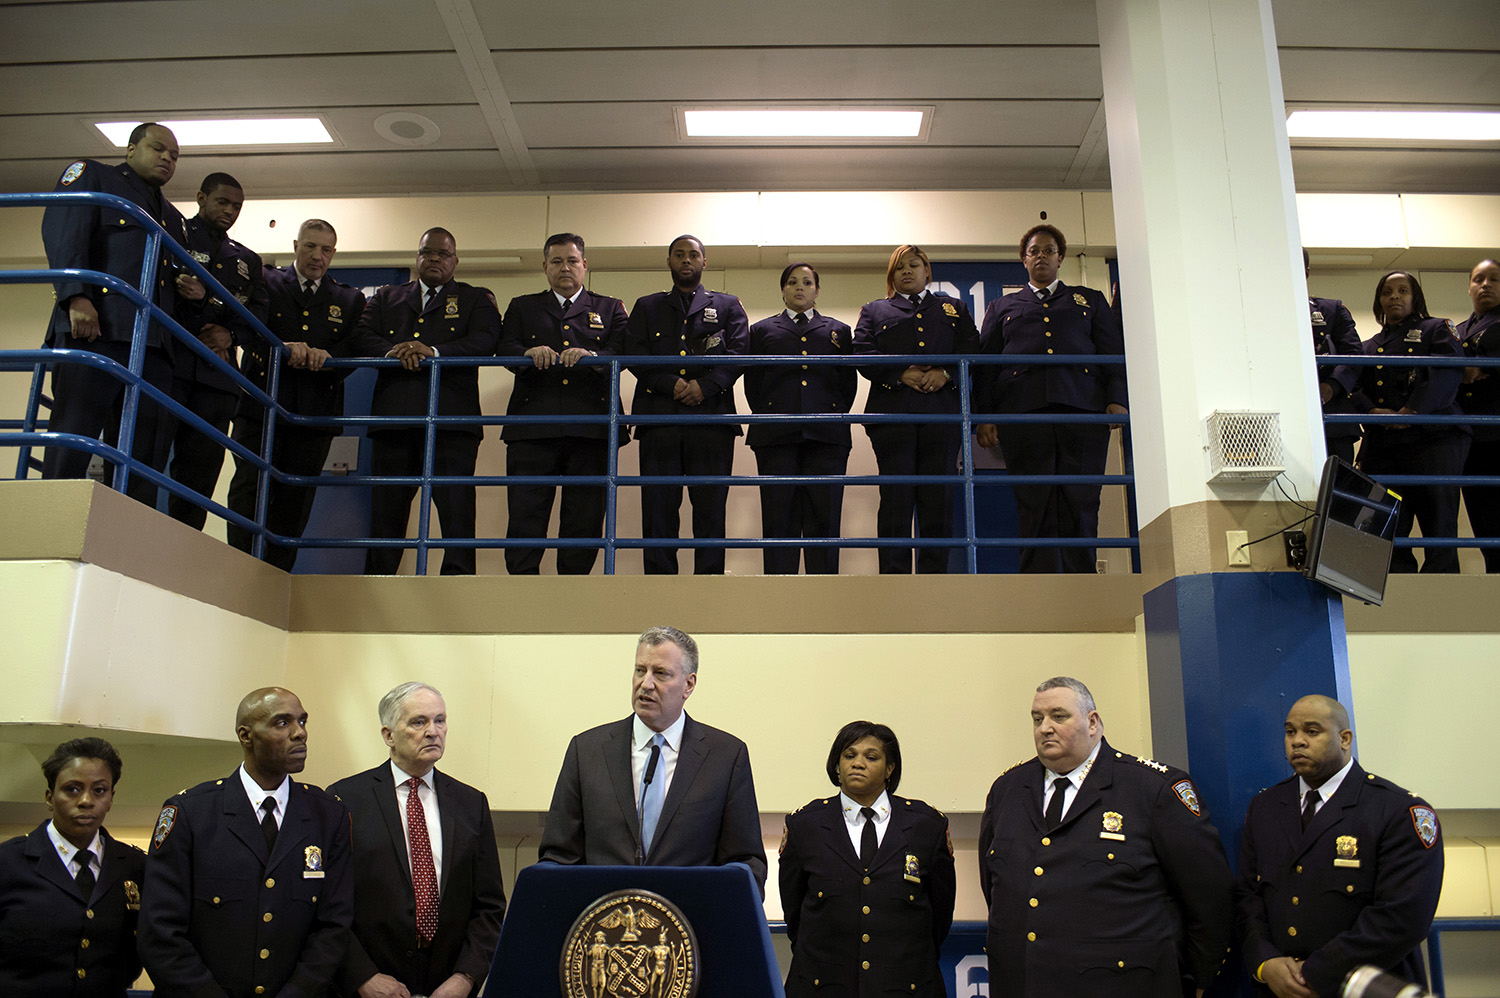 Advocates want Mr. de Blasio to shrink the size of Rikers Island—or maybe even close it all together. (Photo: Rob Bennet/Mayoral Photography Office)